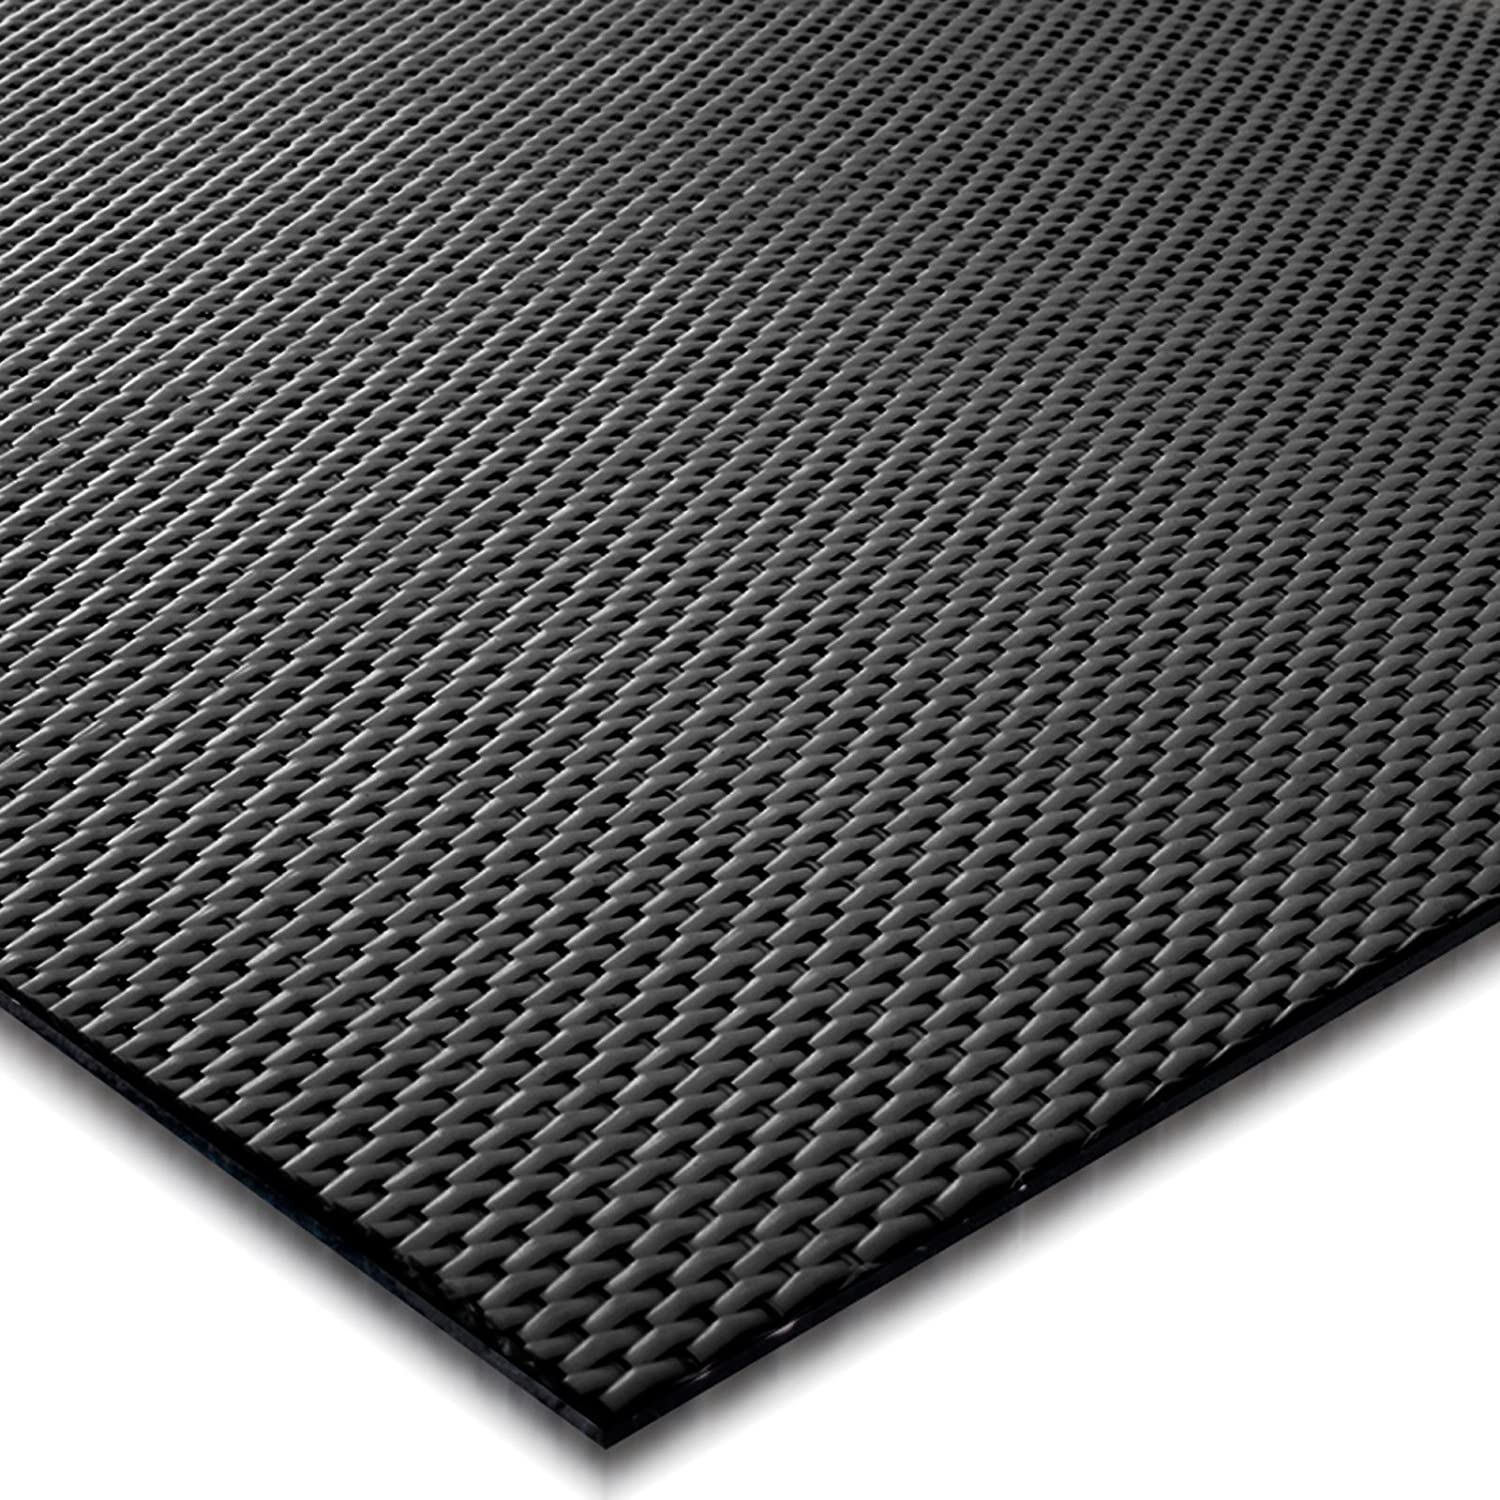 casa pura Padua Black Flat Weave Non Slip Protector Mat | For Office Chairs etc. | 90x120cm | 6 Sizes